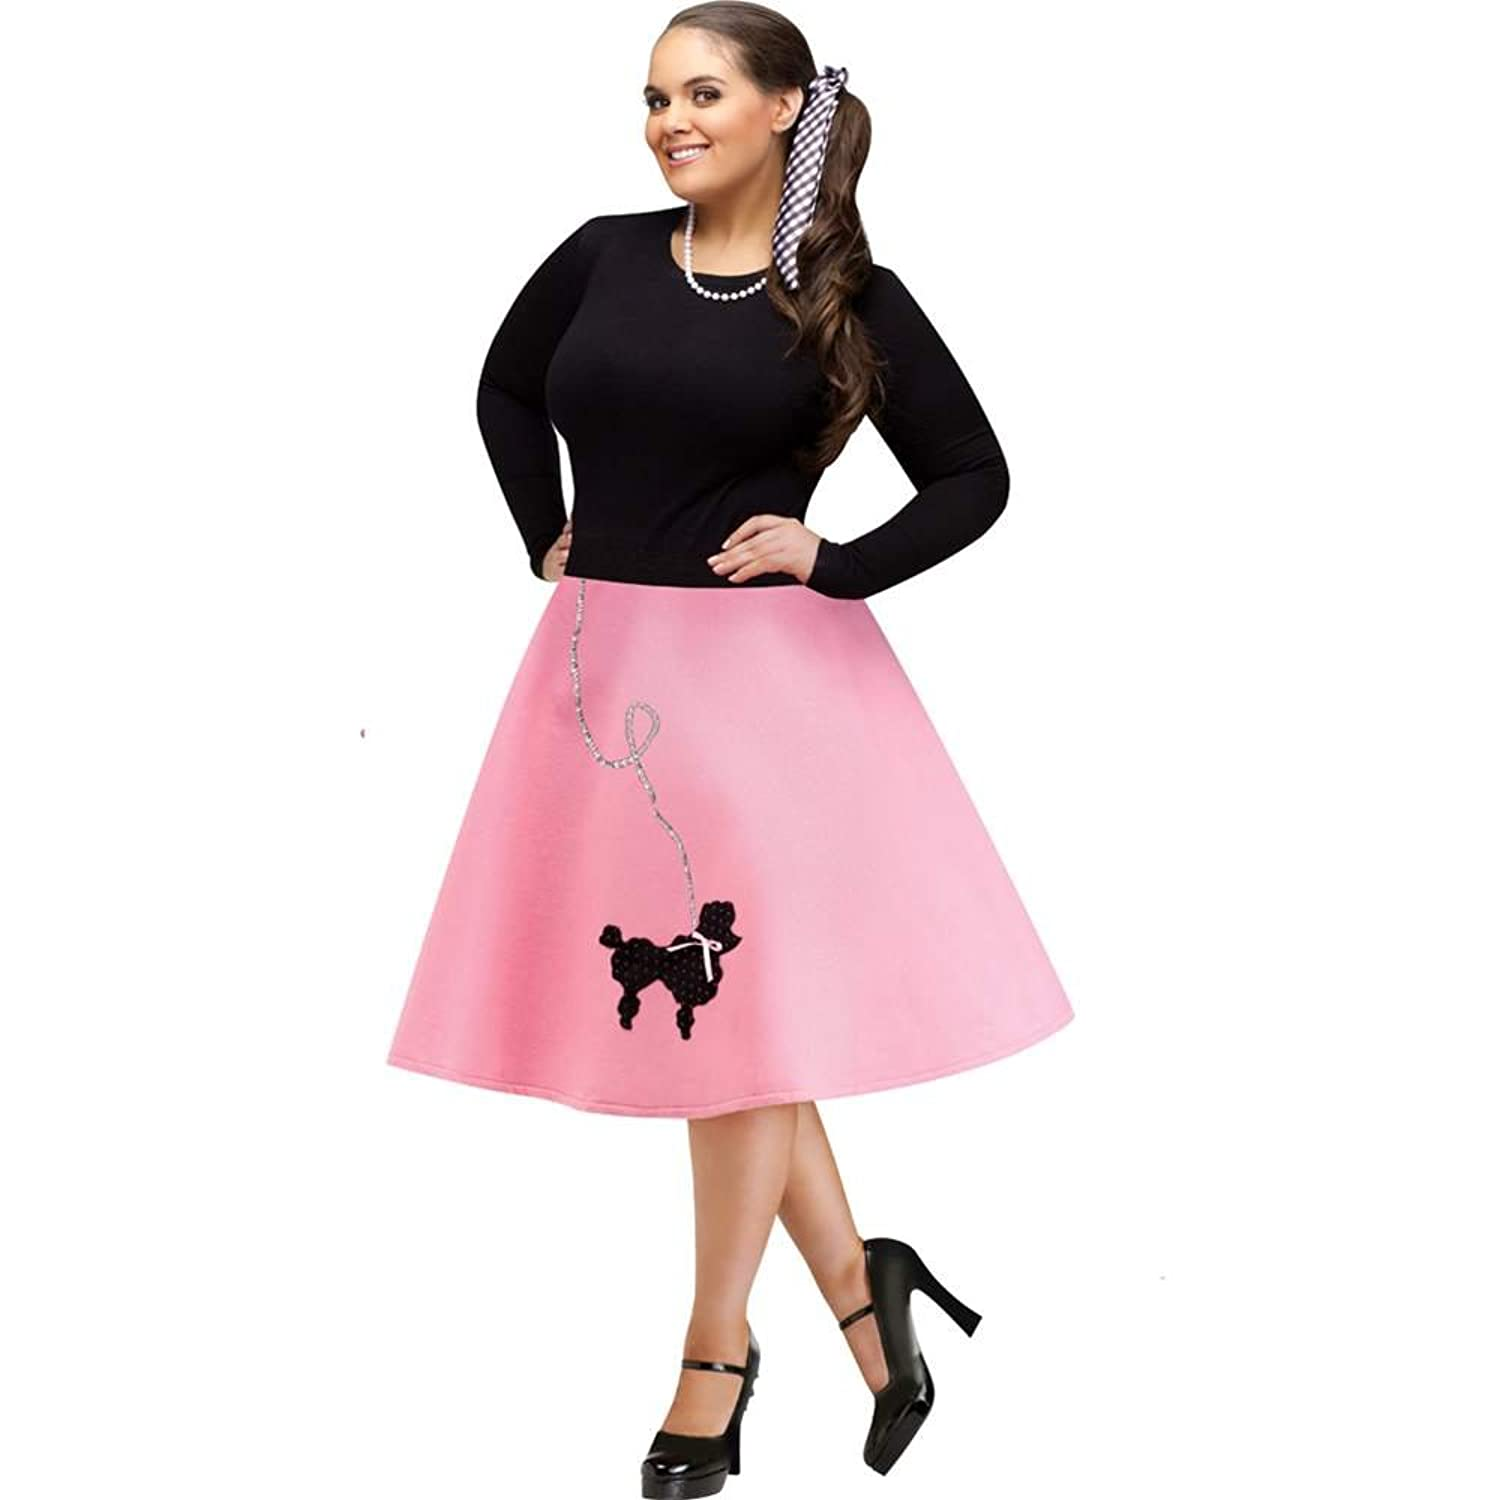 1950s Swing Skirt, Poodle Skirt, Pencil Skirts FunWorld Plus-Size Poodle Skirt Costume $18.99 AT vintagedancer.com